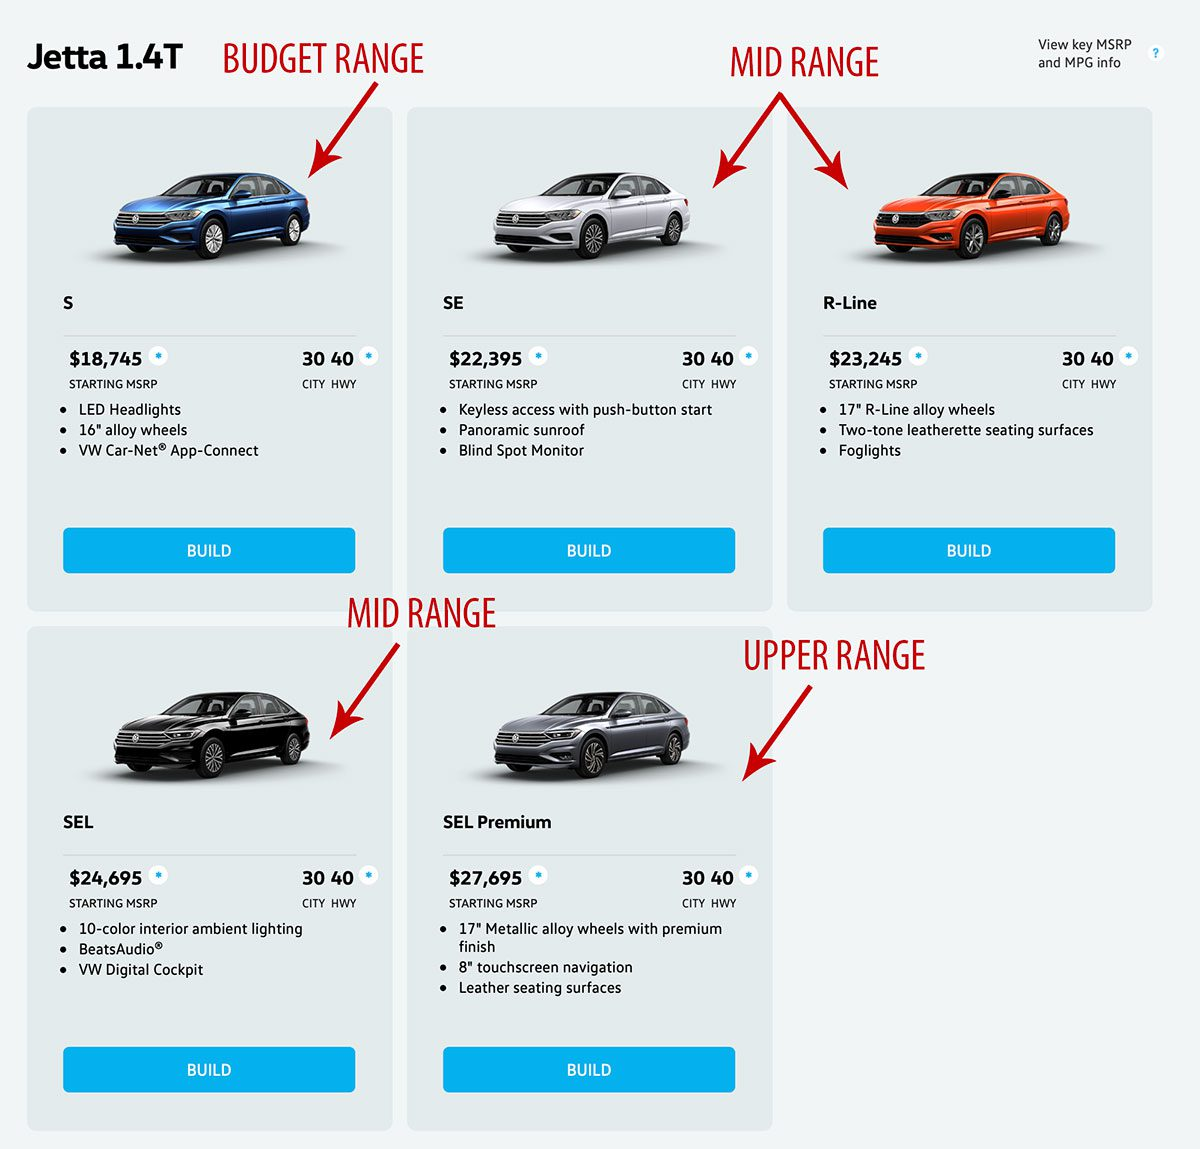 VW Jetta price ranges